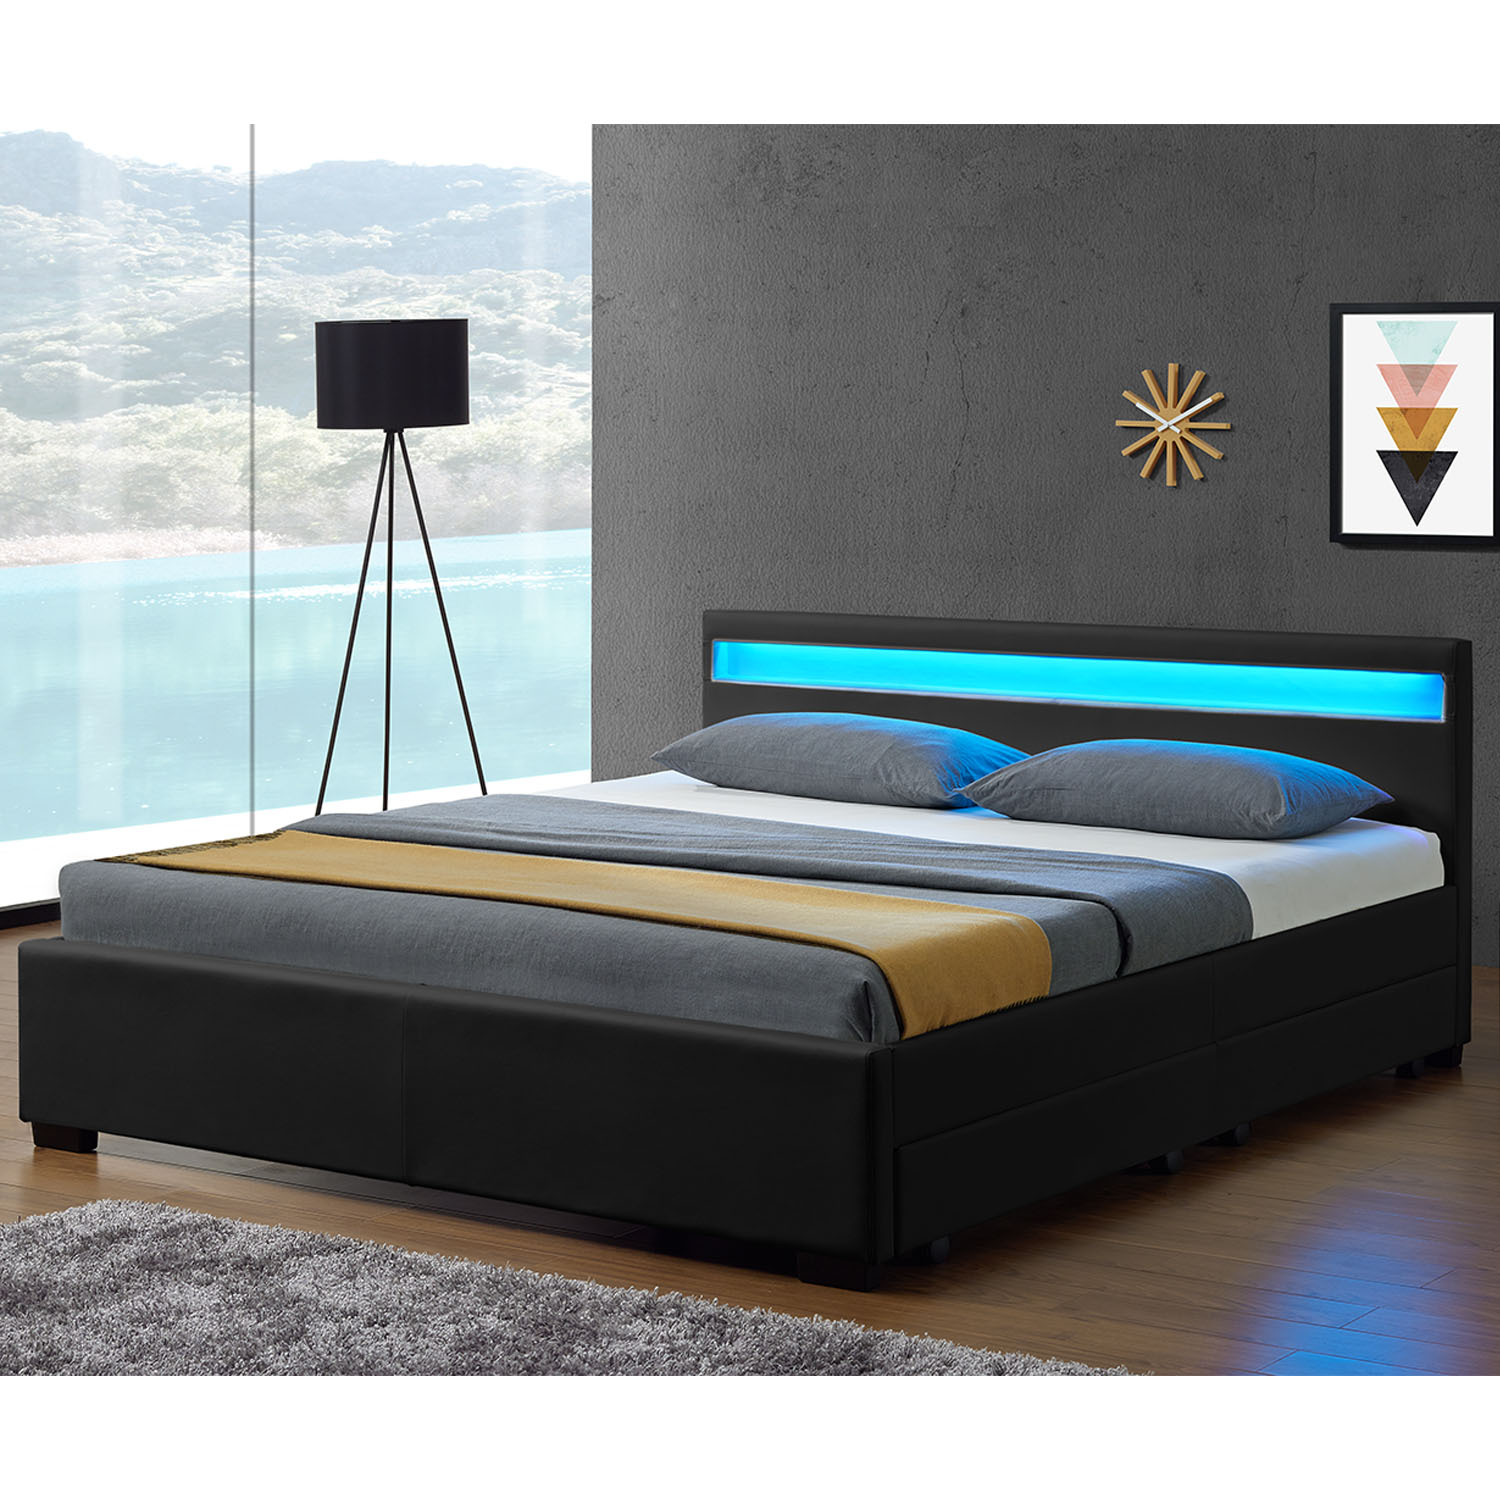 led polsterbett kunstlederbett doppelbett lederbett mit. Black Bedroom Furniture Sets. Home Design Ideas